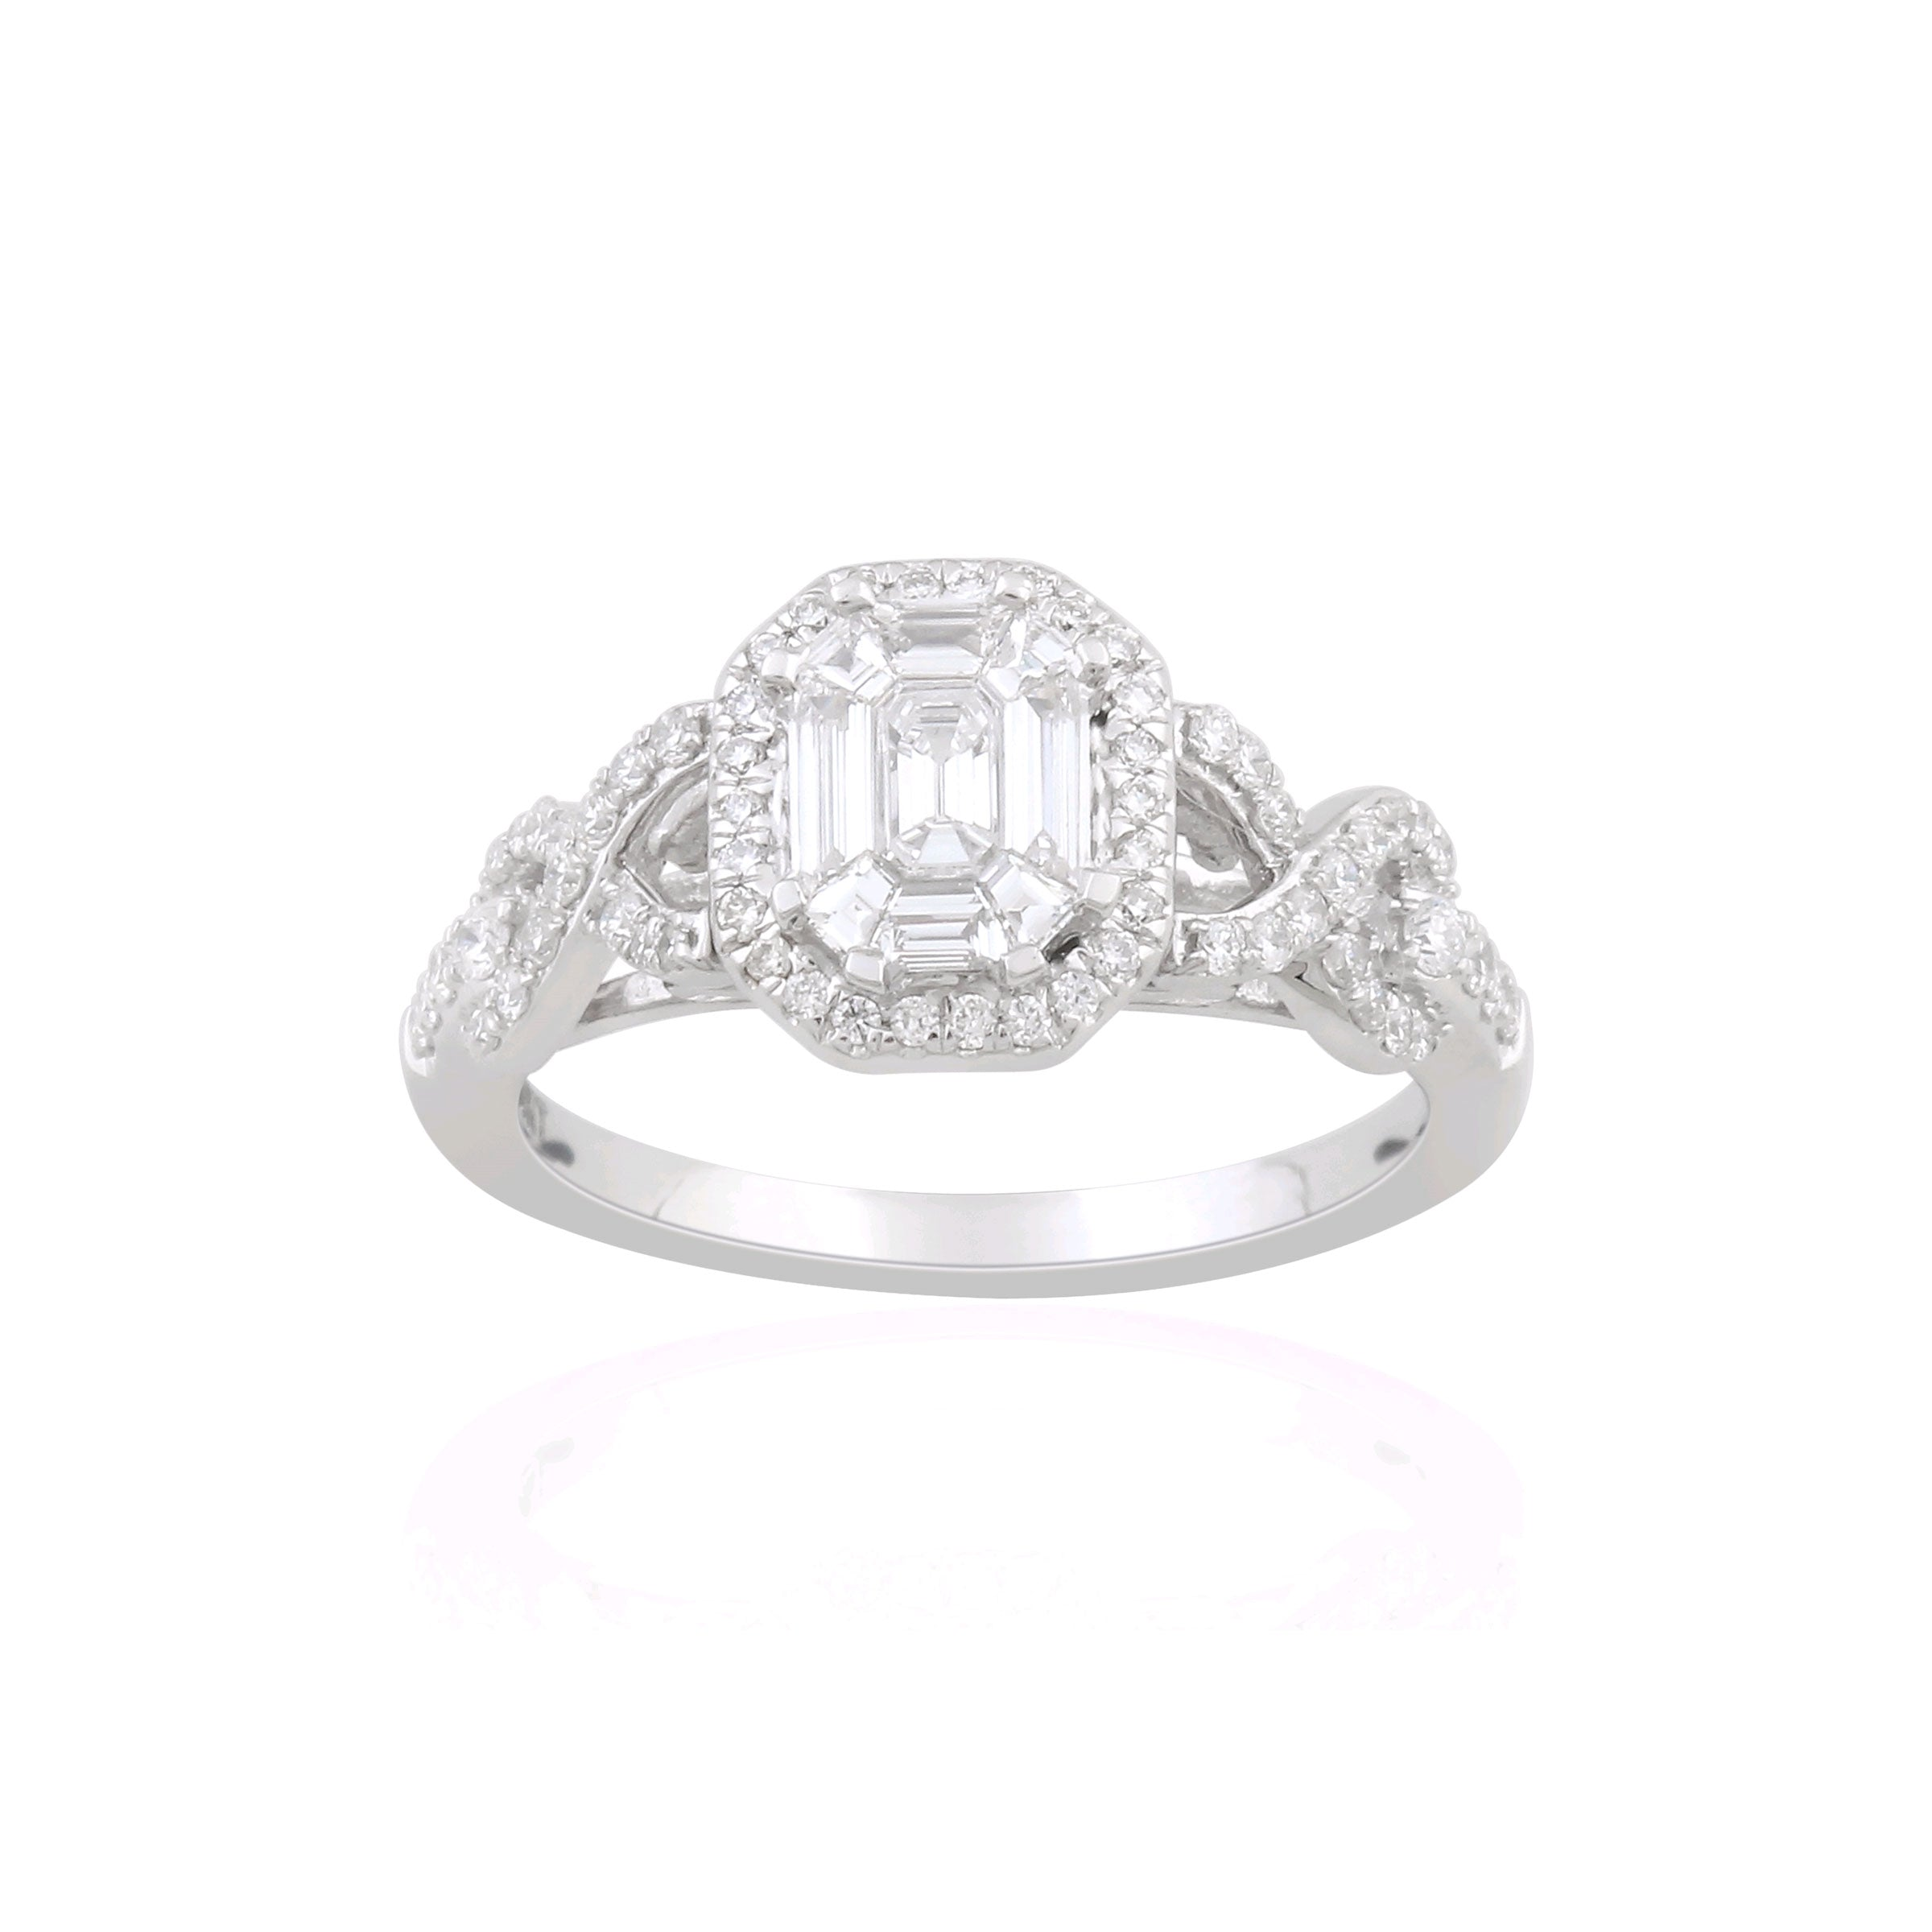 Baguette and Round Diamond Ring, 14K White Gold